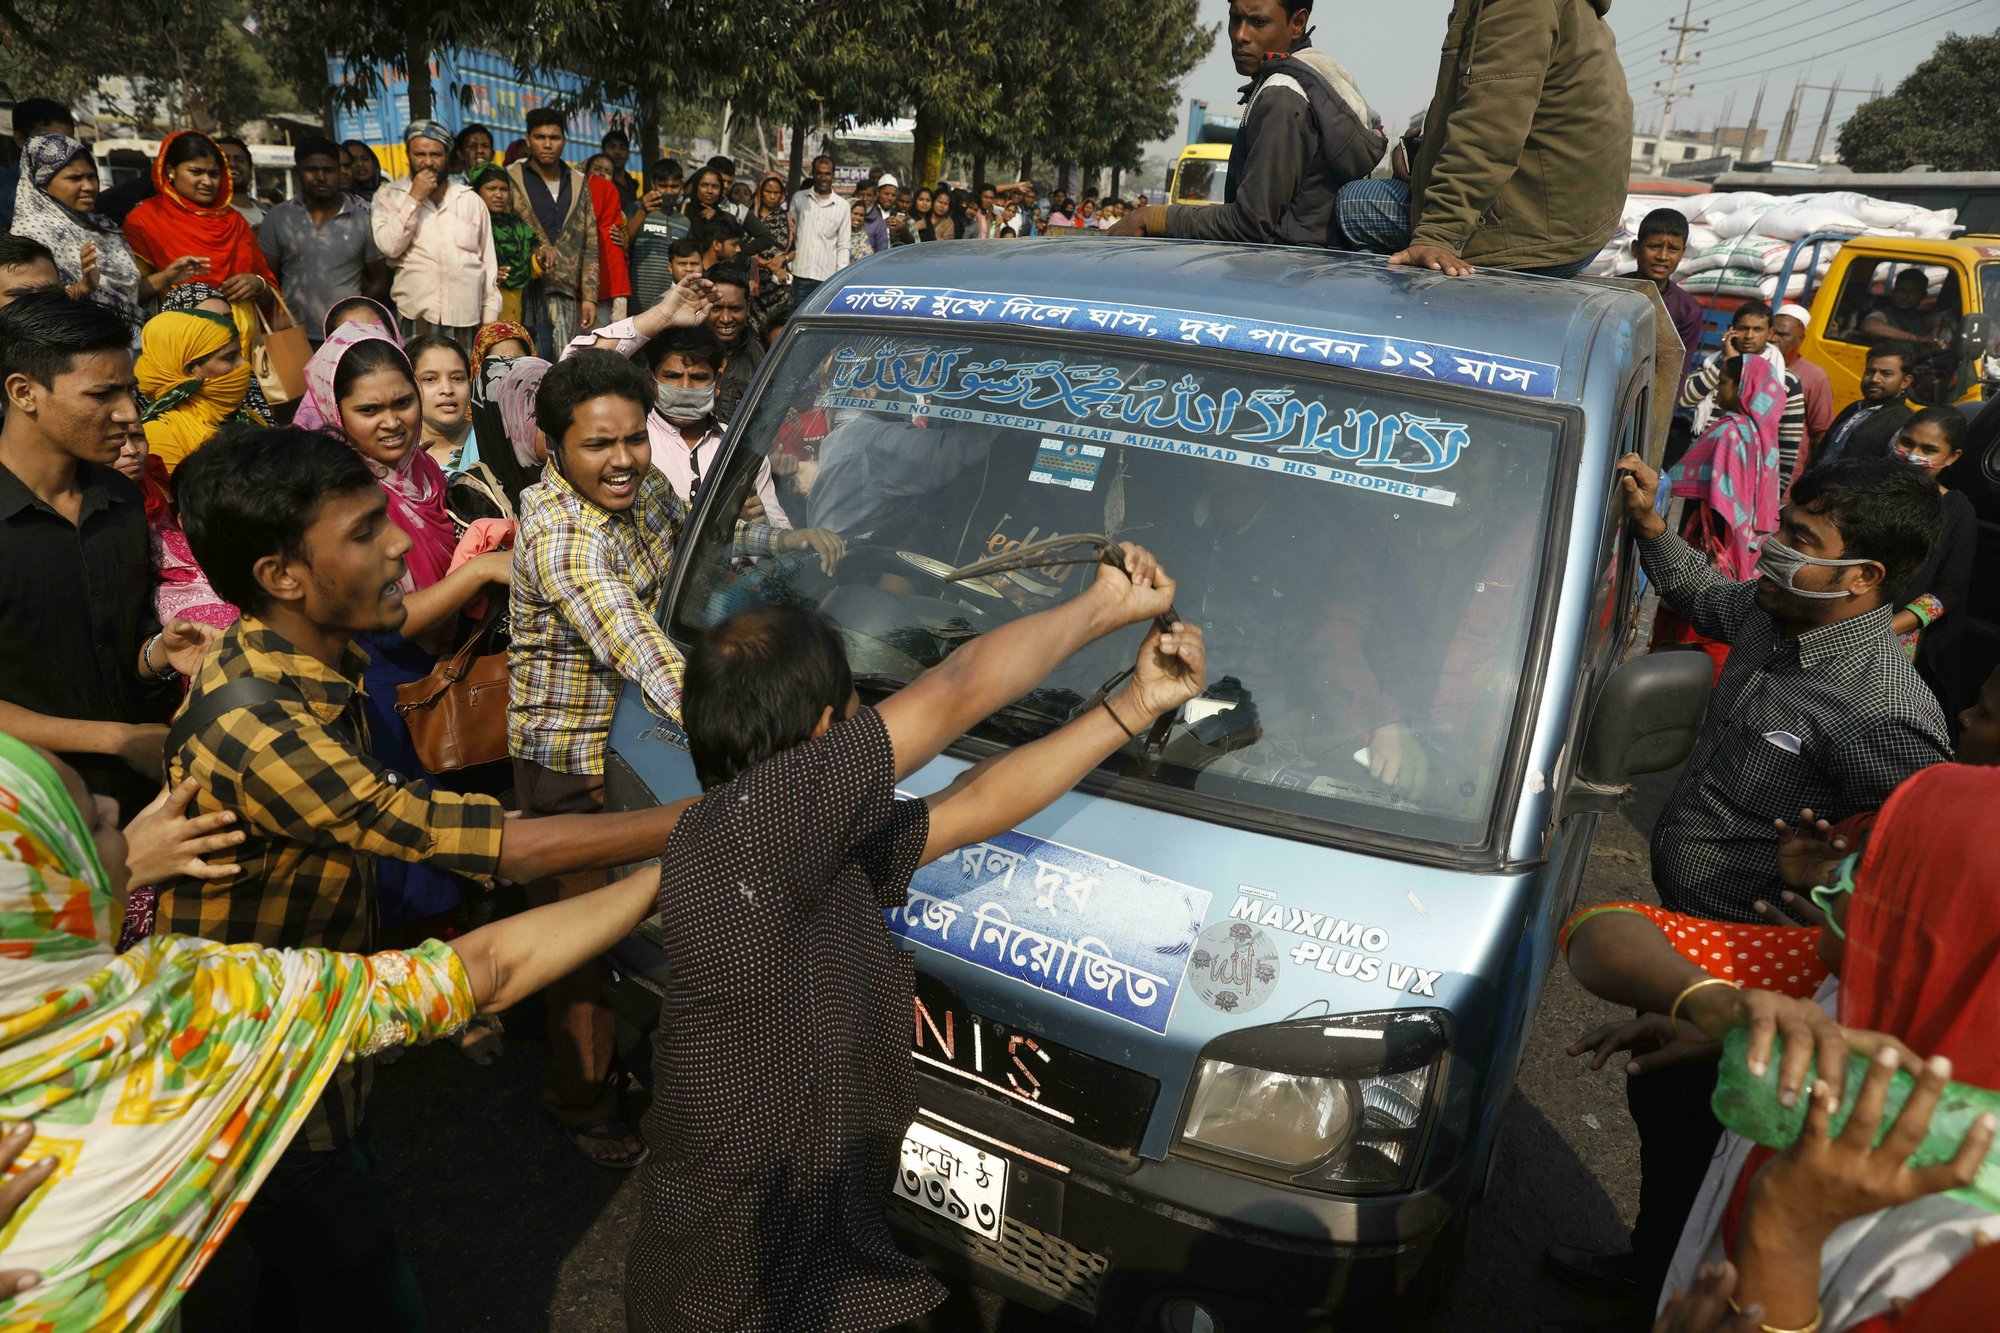 In this Wednesday, Jan. 9, 2019 file photo, Bangladeshi garment workers vandalize a vehicle during a protest in Savar, on the outskirts of Dhaka, Bangladesh. Kalpona Akter of the Bangladesh Center for Worker Solidarity said Thursday, Jan. 31, that more than 5,000 garment workers demanding wage hikes have been laid off while hundreds of them are facing police charges in the world's second-largest garment export industry. She said the firings came after thousands of workers took to the streets earlier this month in and around Dhaka, the nation's capital. (AP Photo)